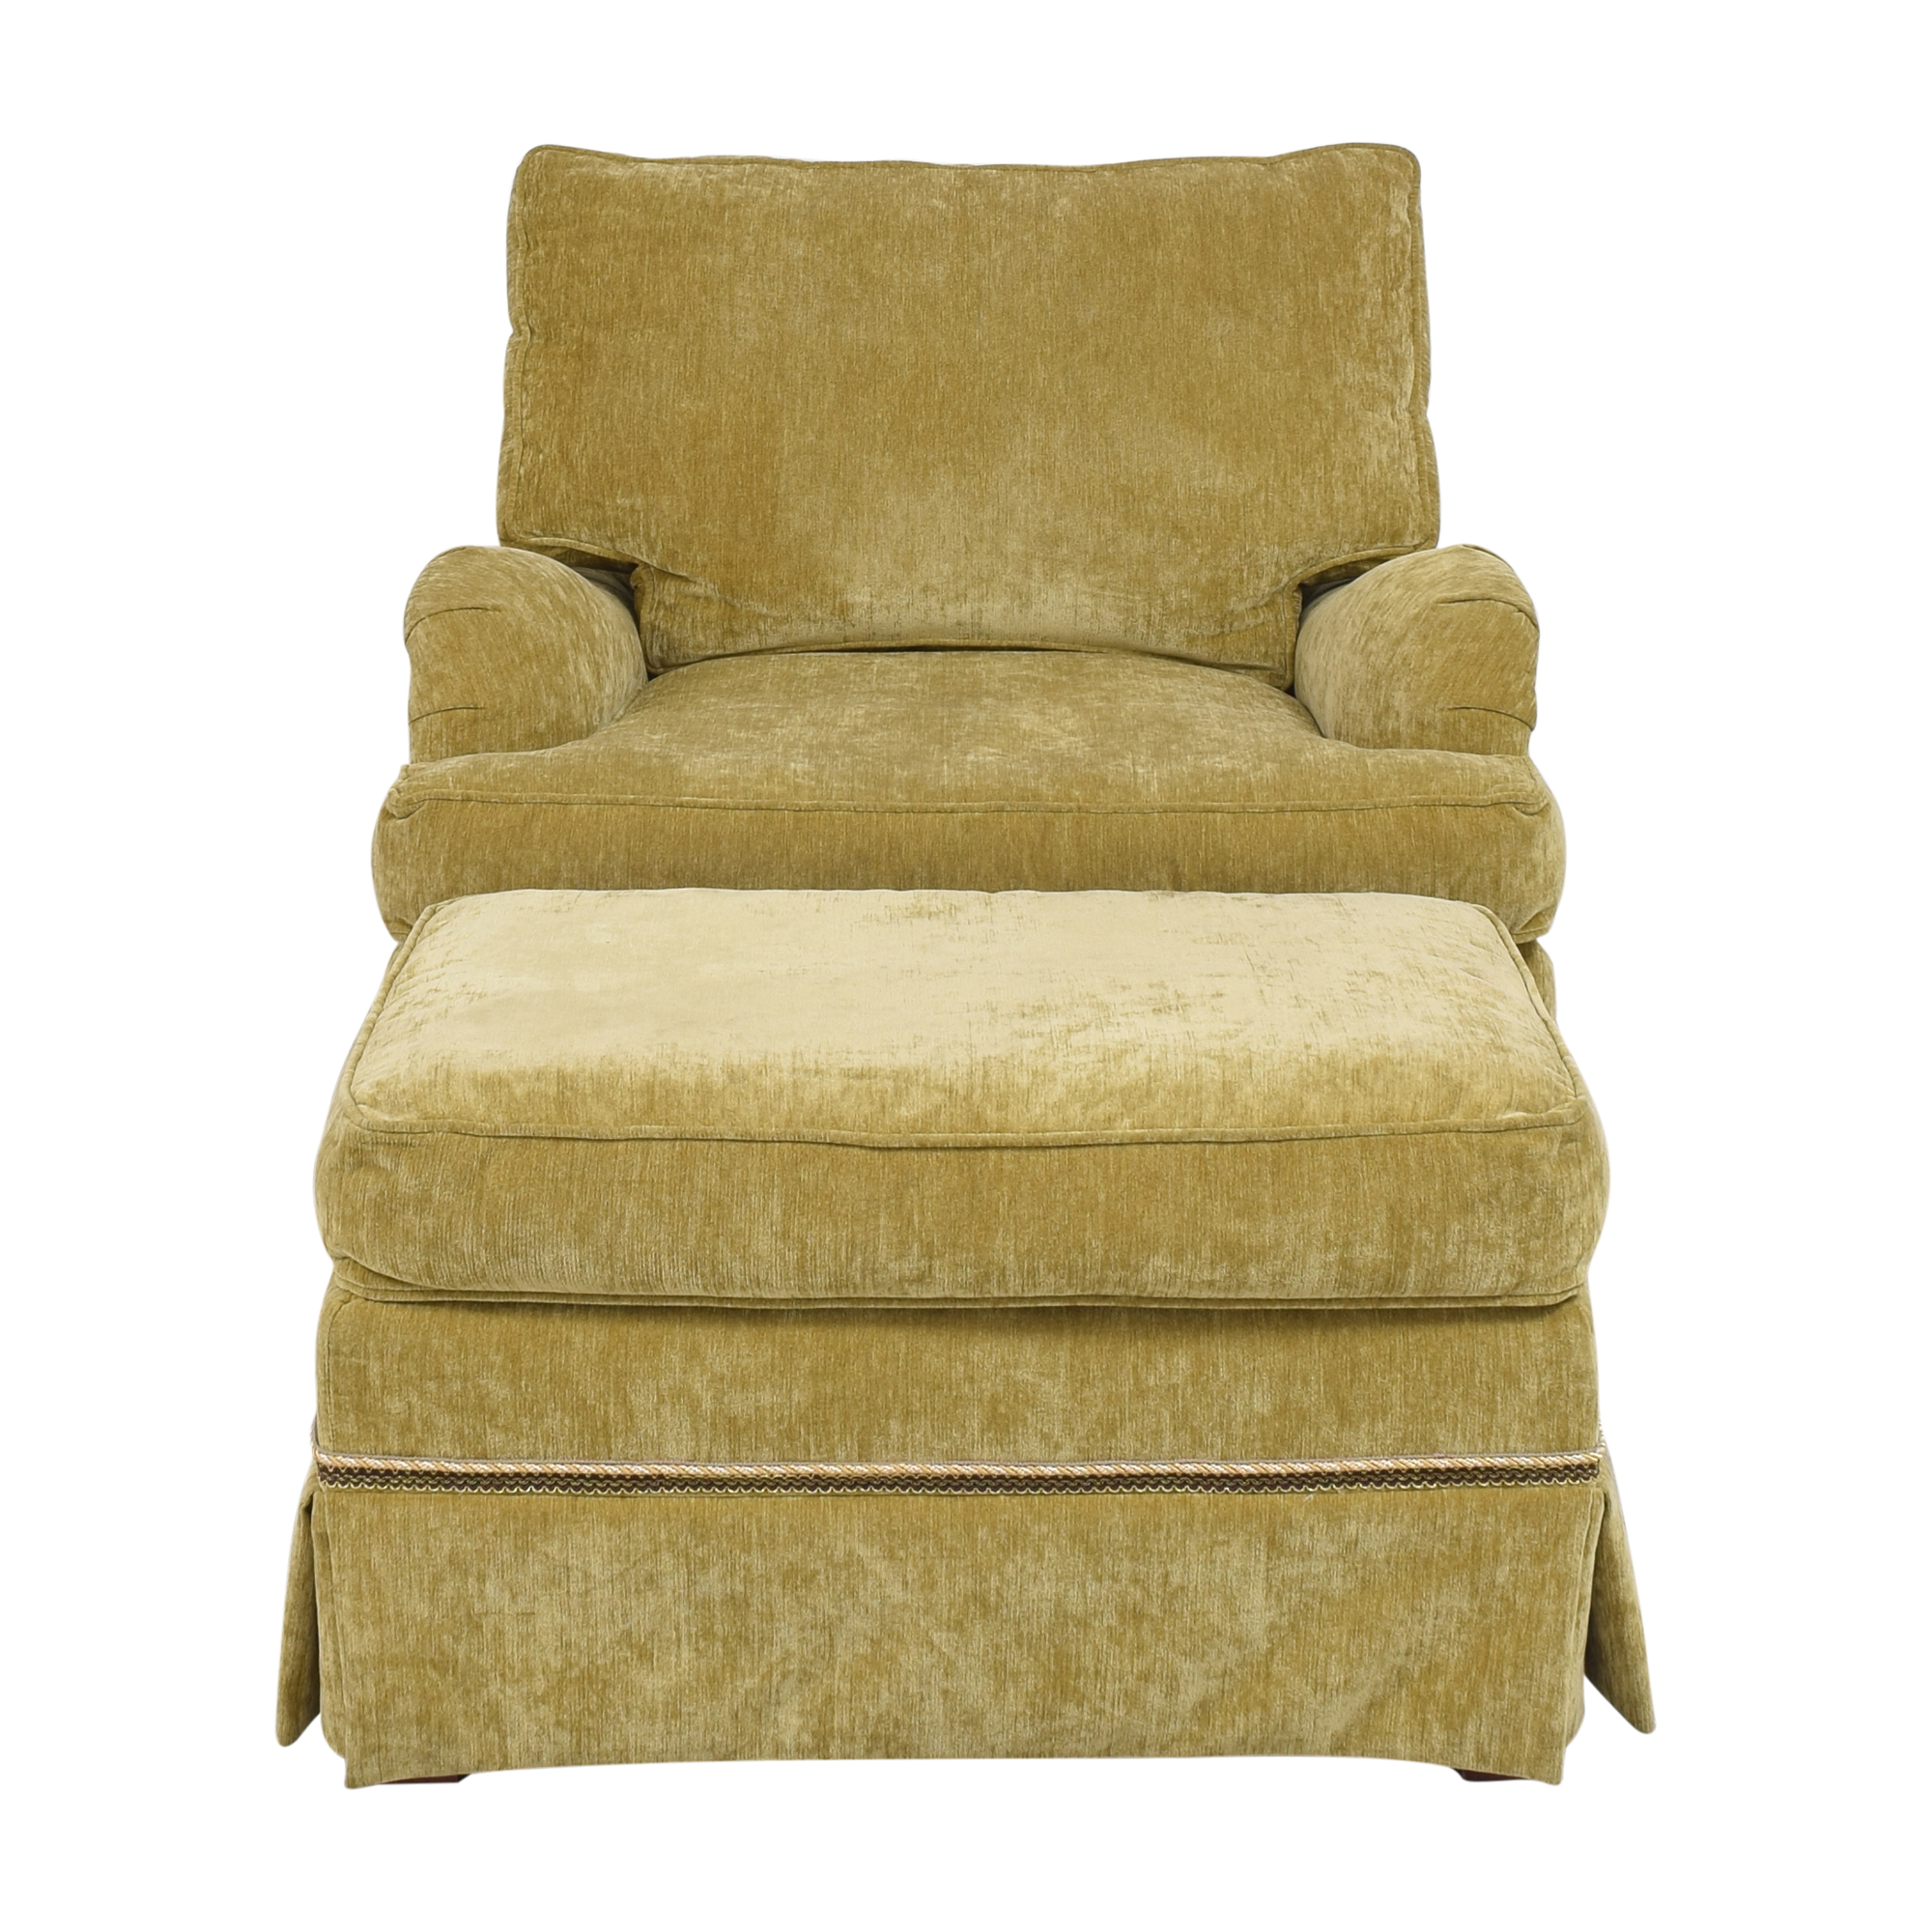 Domain Home Chair with Ottoman / Chairs